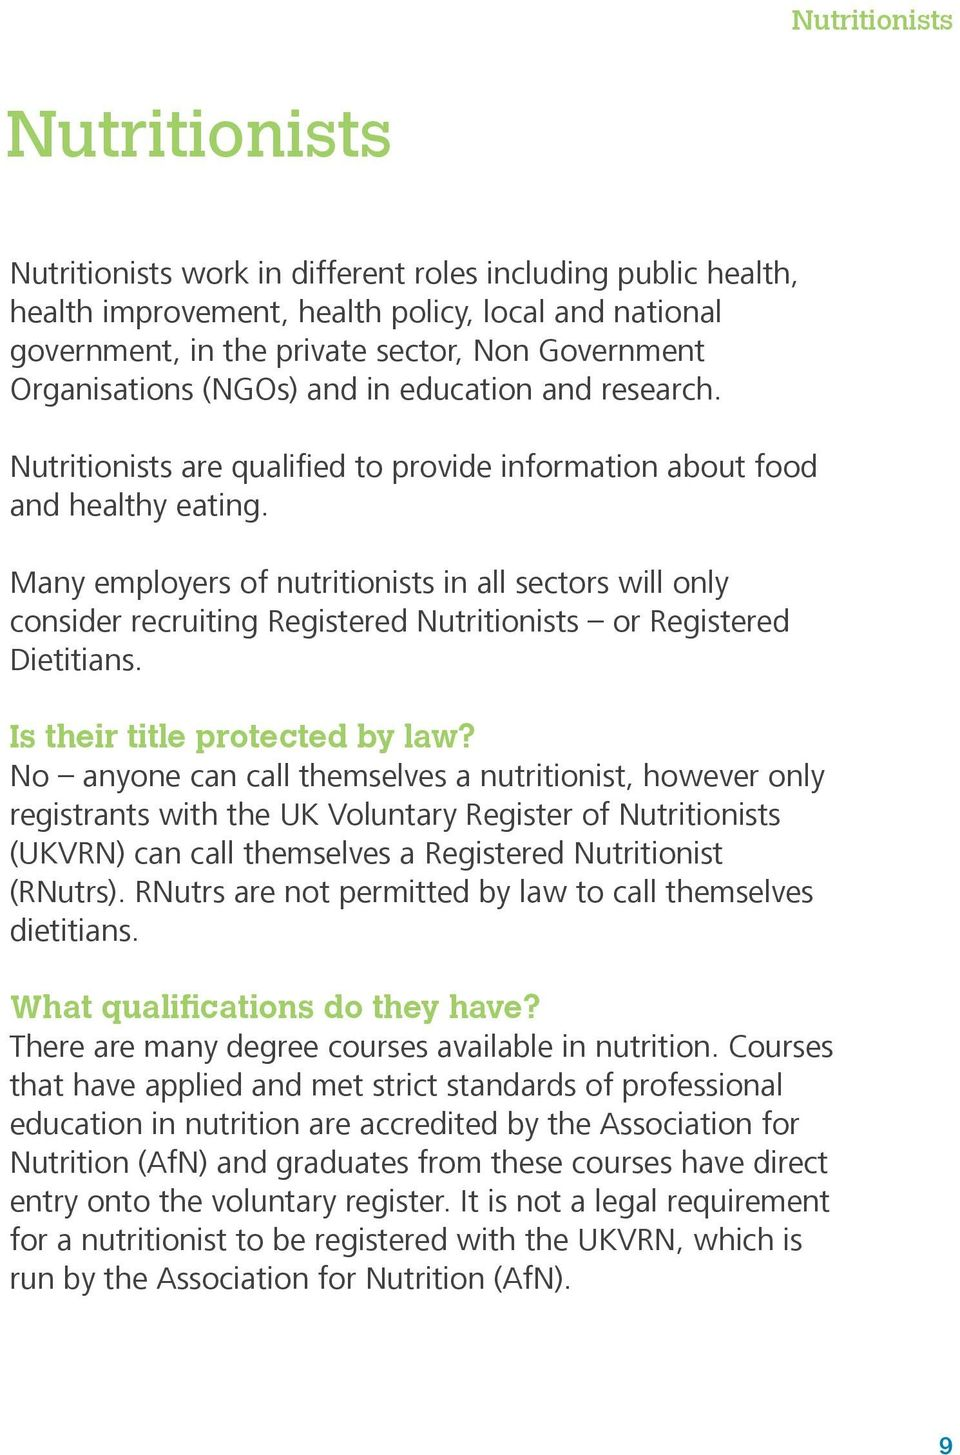 Many employers of nutritionists in all sectors will only consider recruiting Registered Nutritionists or Registered Dietitians. Is their title protected by law?